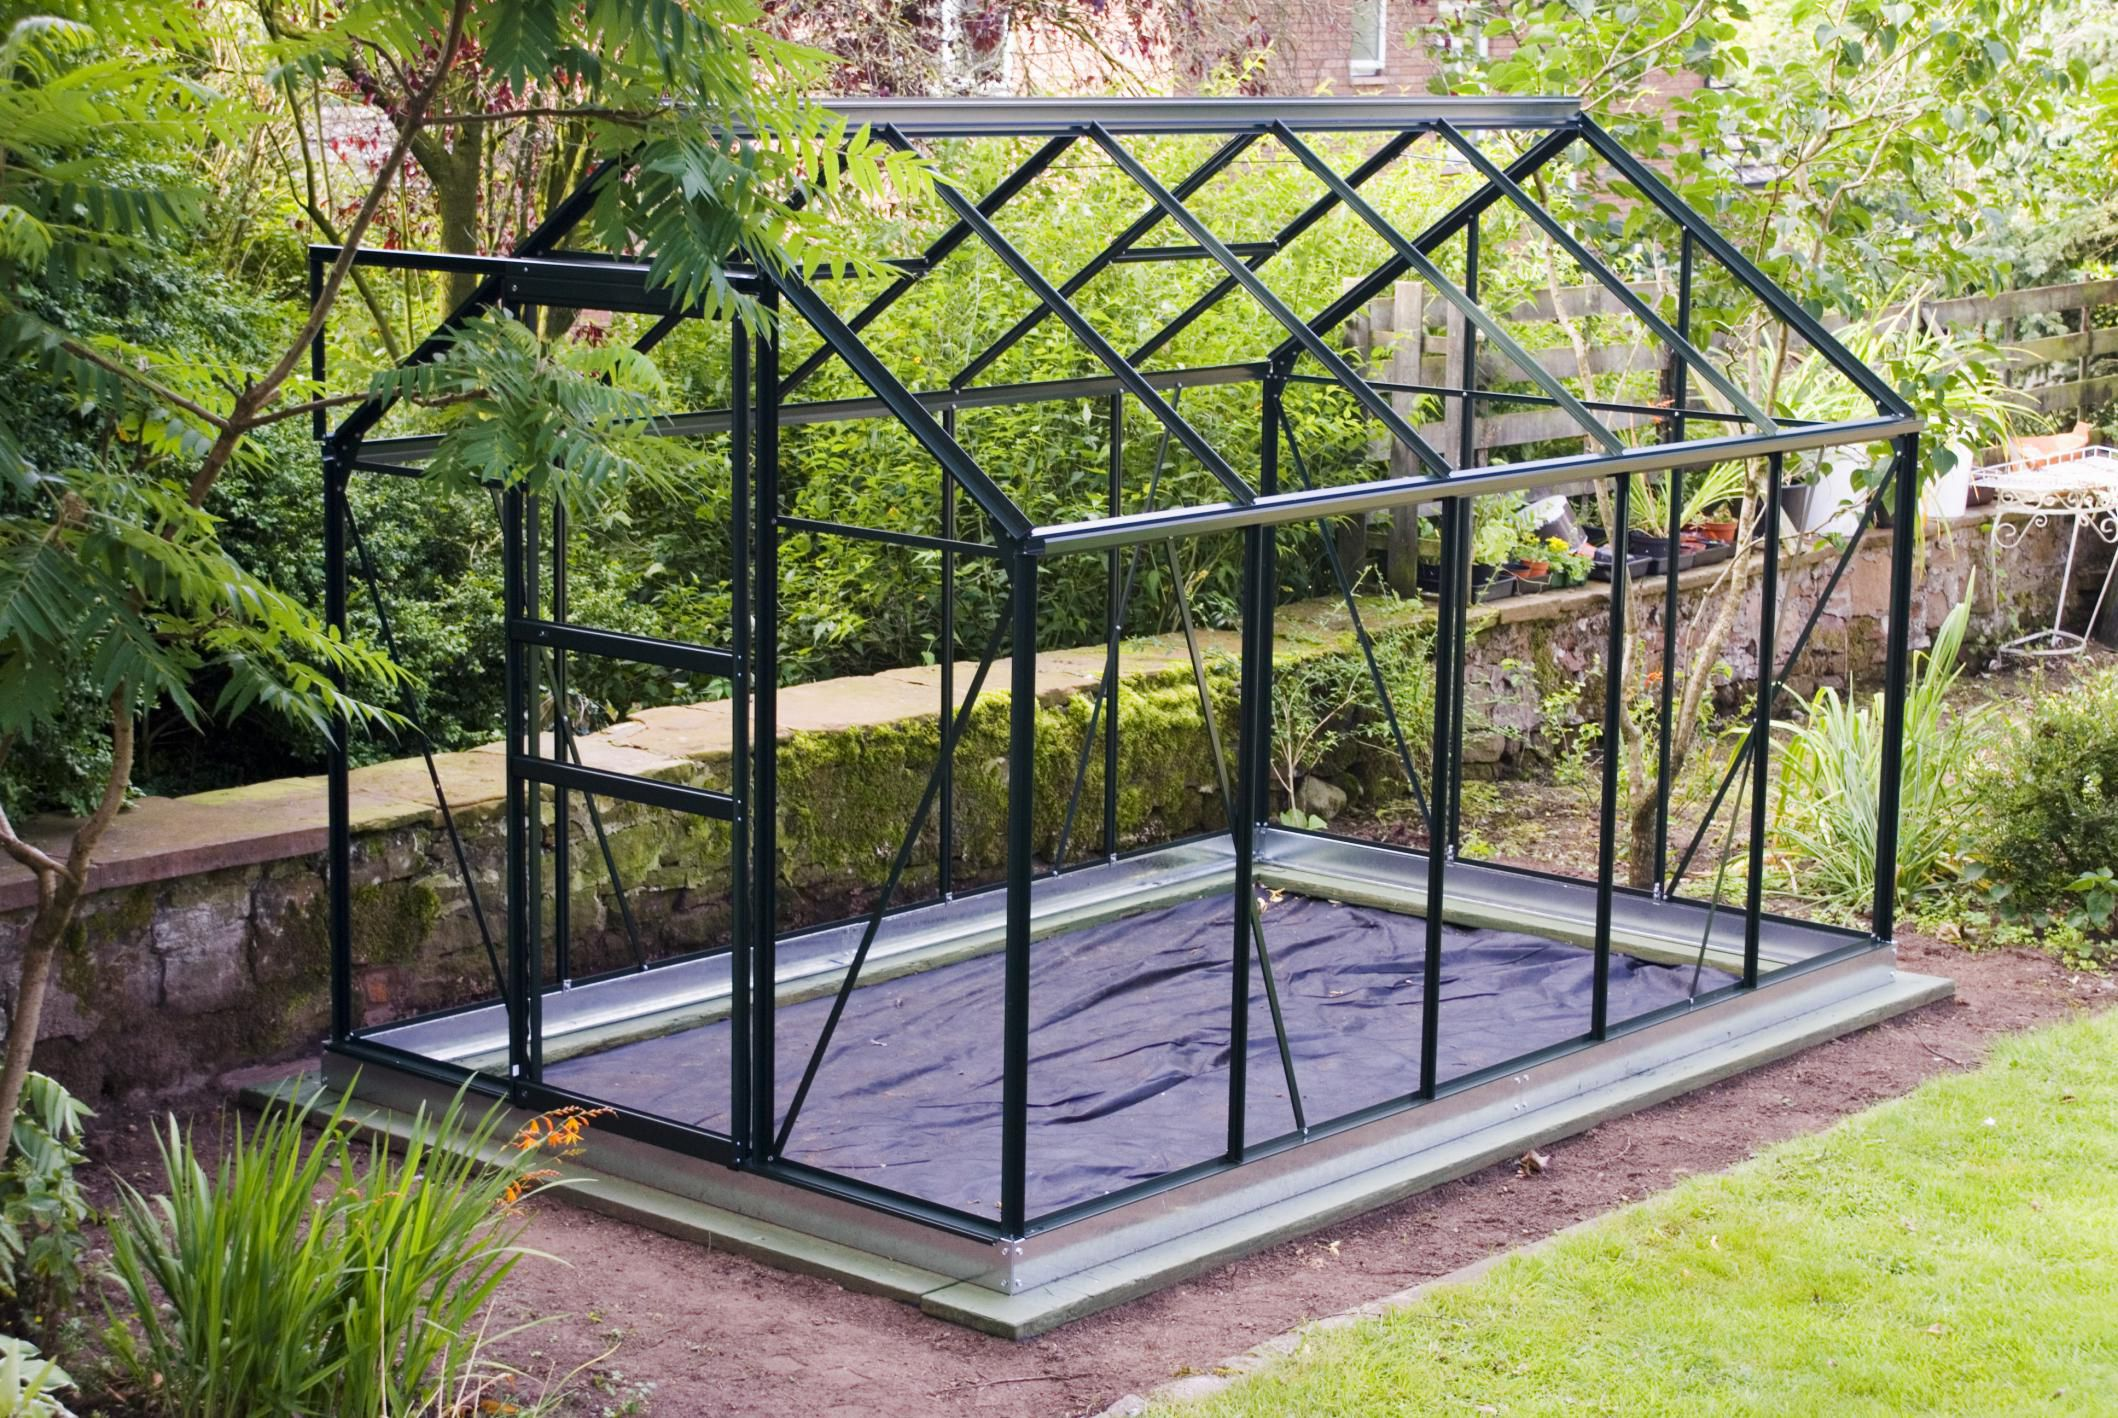 4 Frame Material Options for a Greenhouse